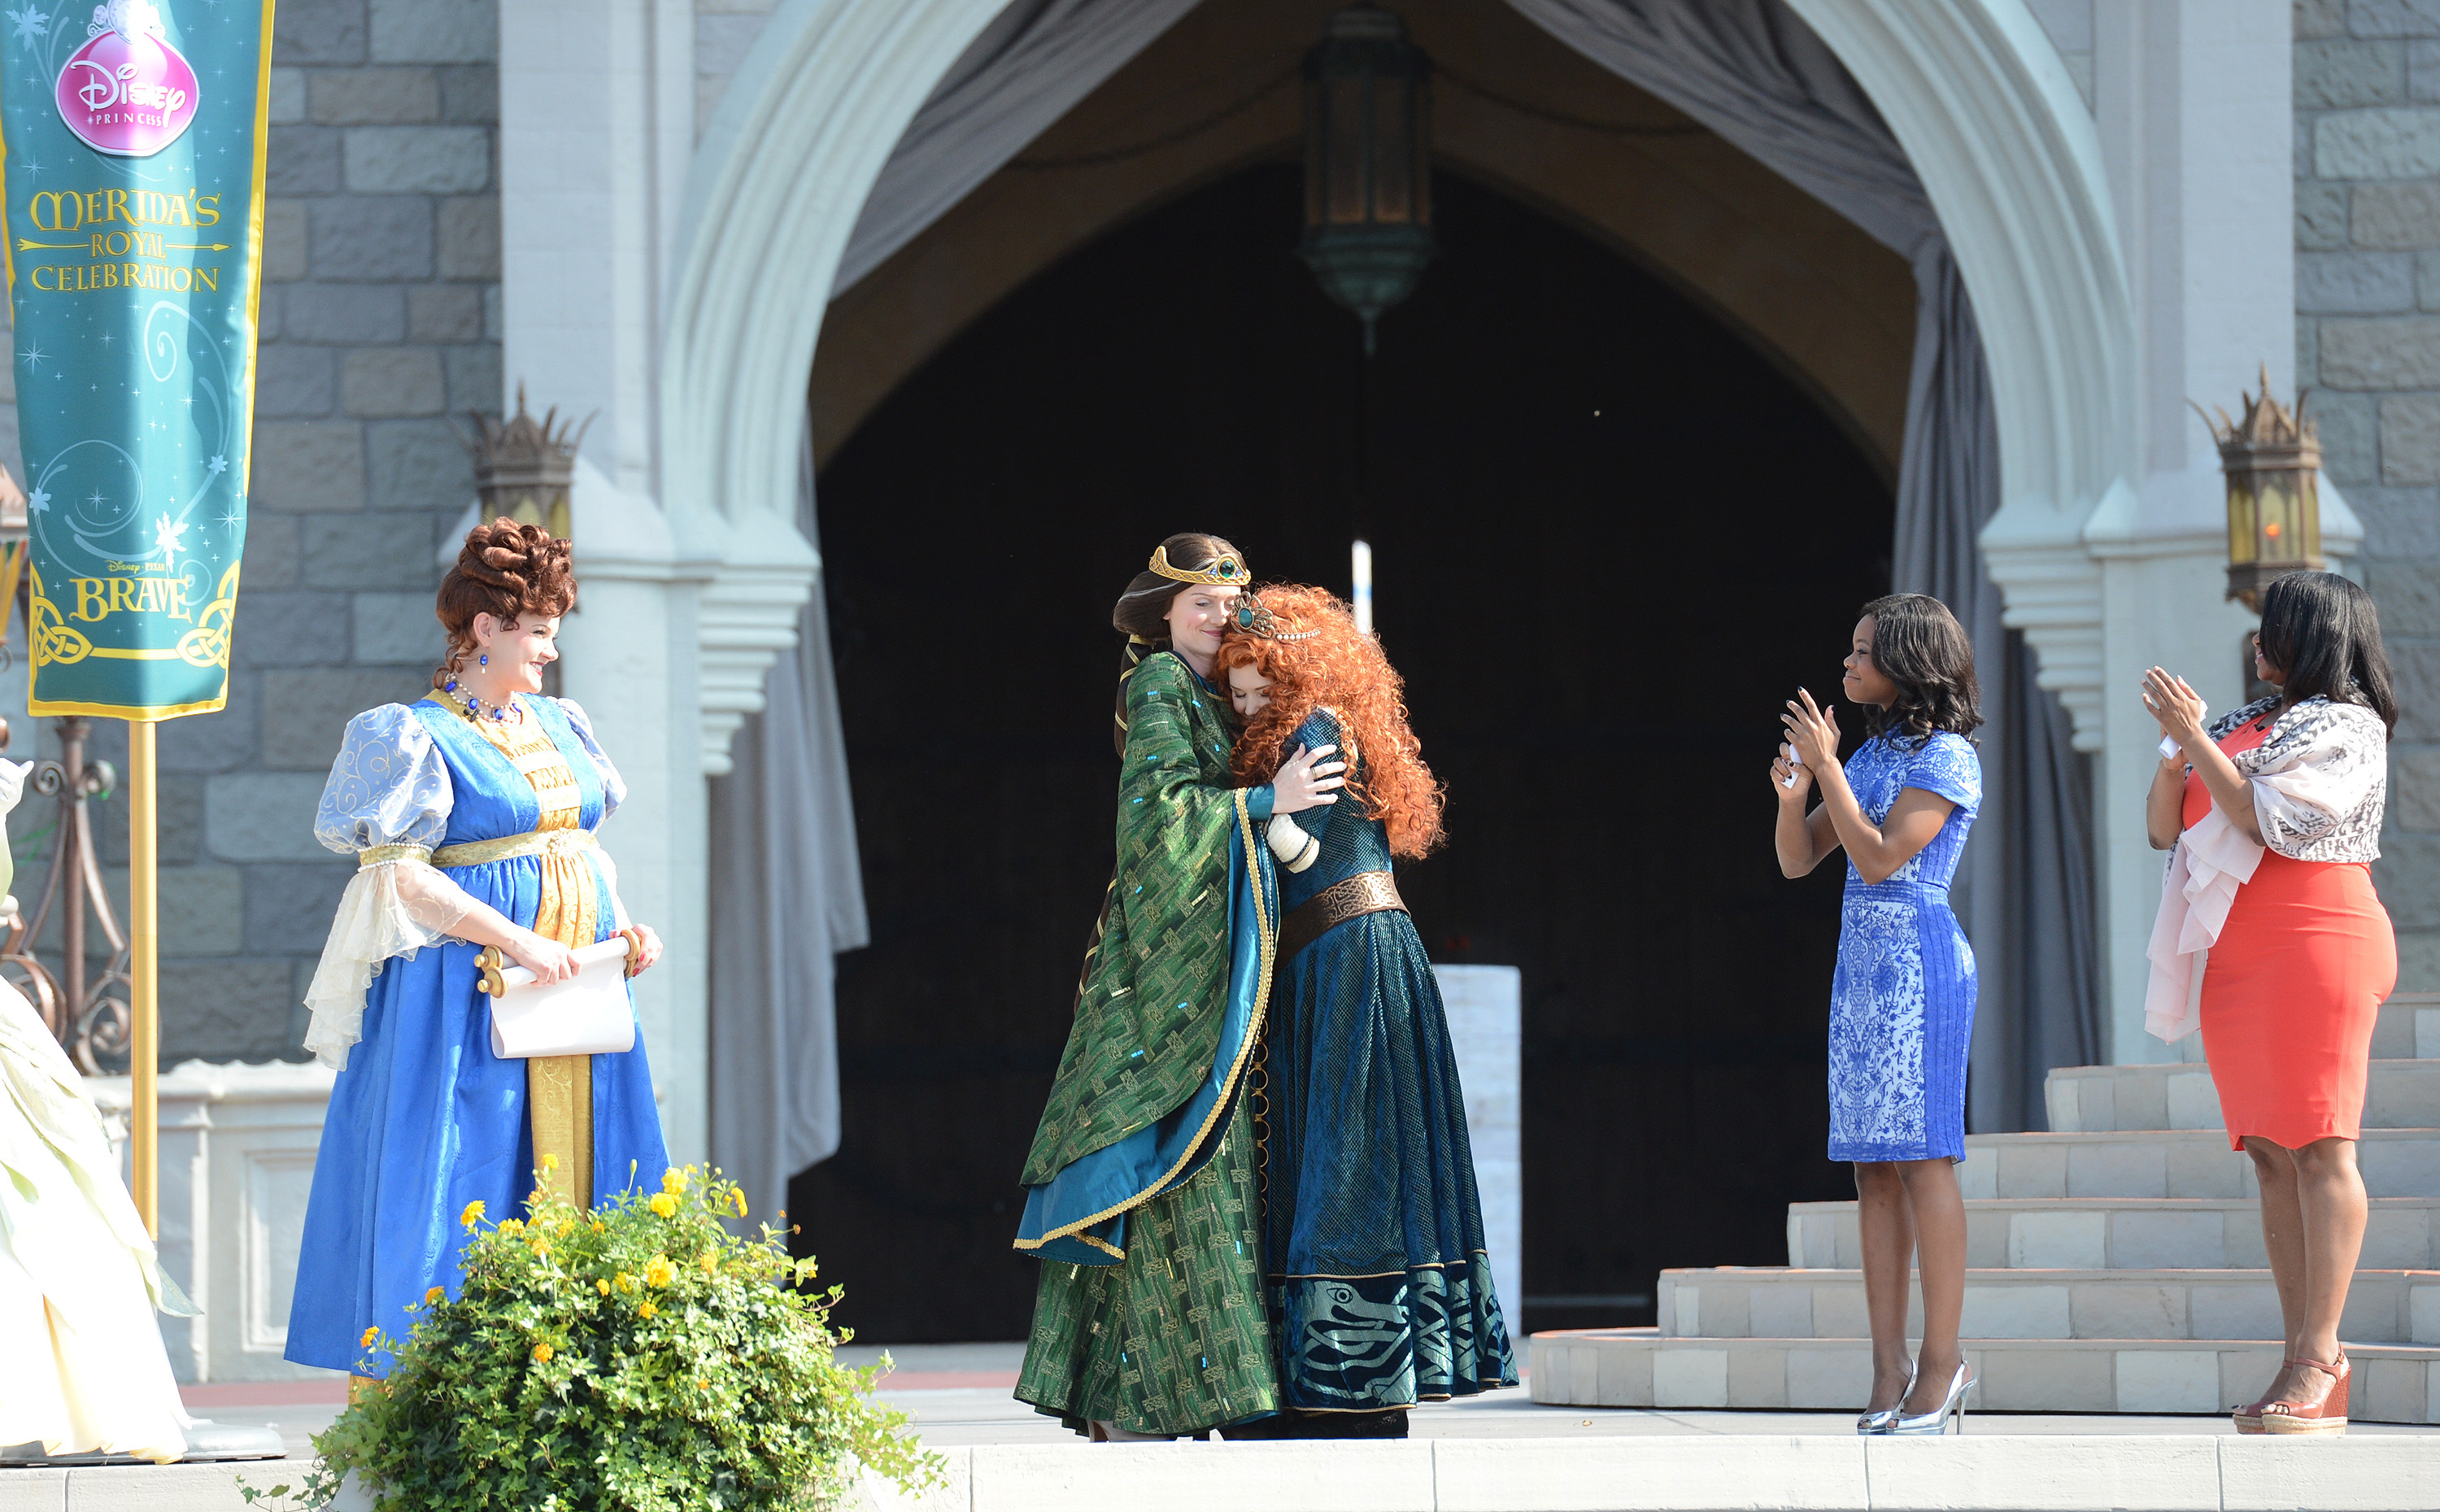 """Gymnastics gold medalist Gabby Douglas and her mother Natalie Hawkins look on as the heroine from the Disney-Pixar animated film """"Brave"""" is crowned a Disney Princess by her mother Queen Elinor on May 11, 2013 in conjunction with Mother's Day festivities at Walt Disney World Resort in Lake Buena Vista, Fla. (Photo: Business Wire)"""